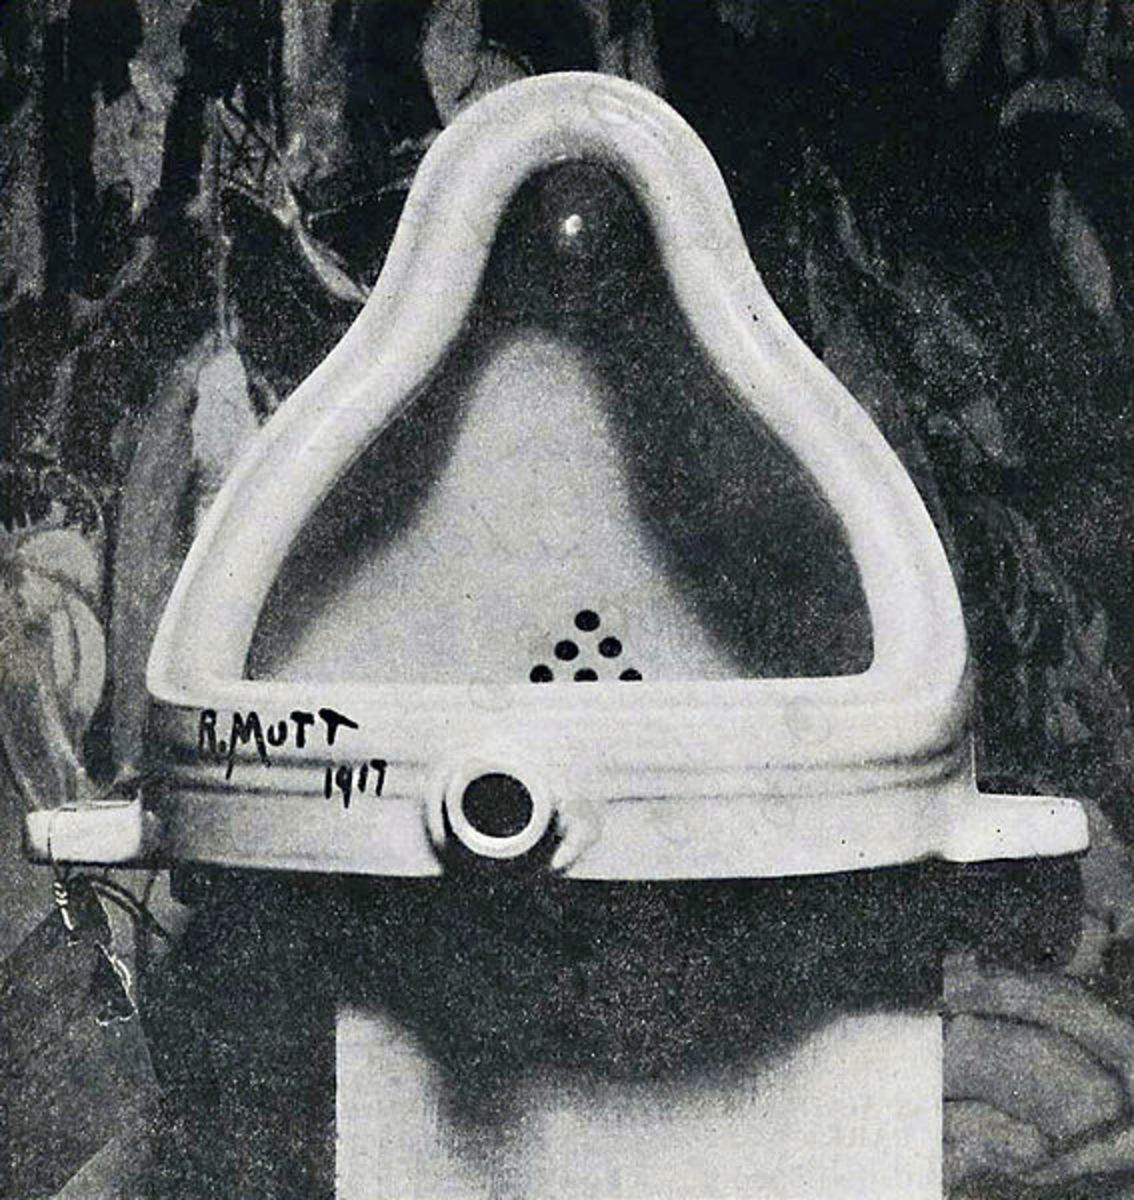 The original Fountain photographed by Alfred Stieglitz in 1917.